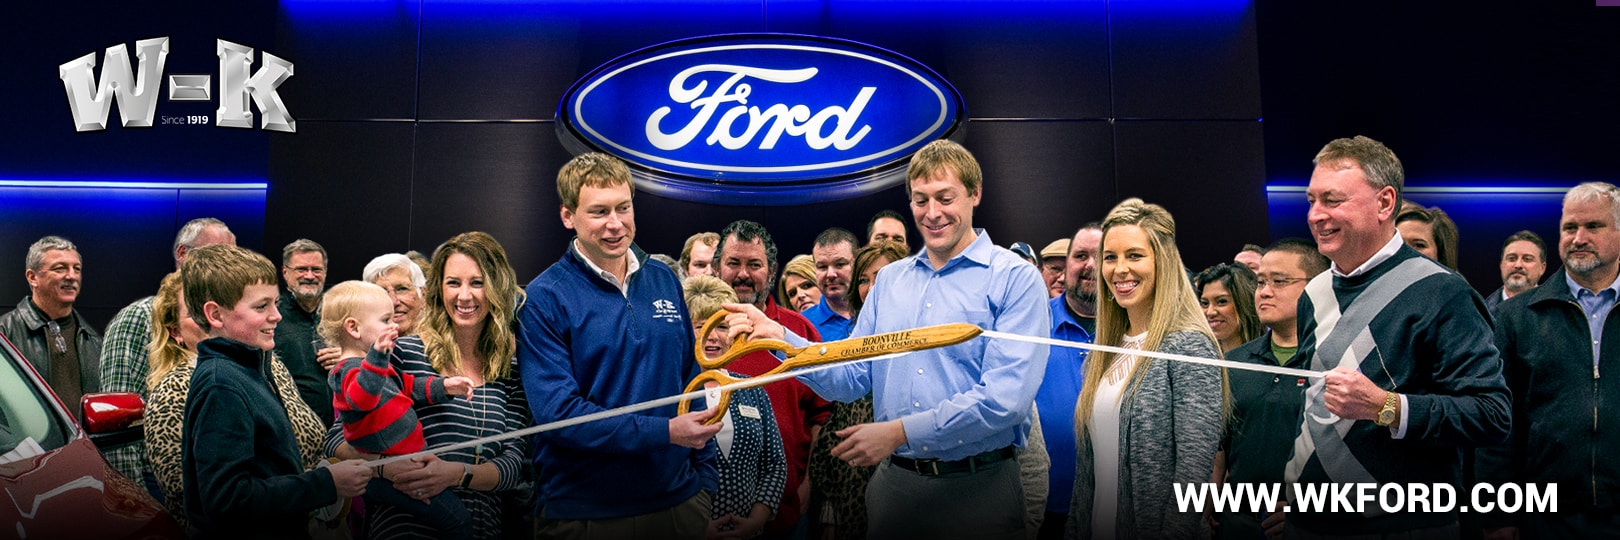 W-K Ford Inventory